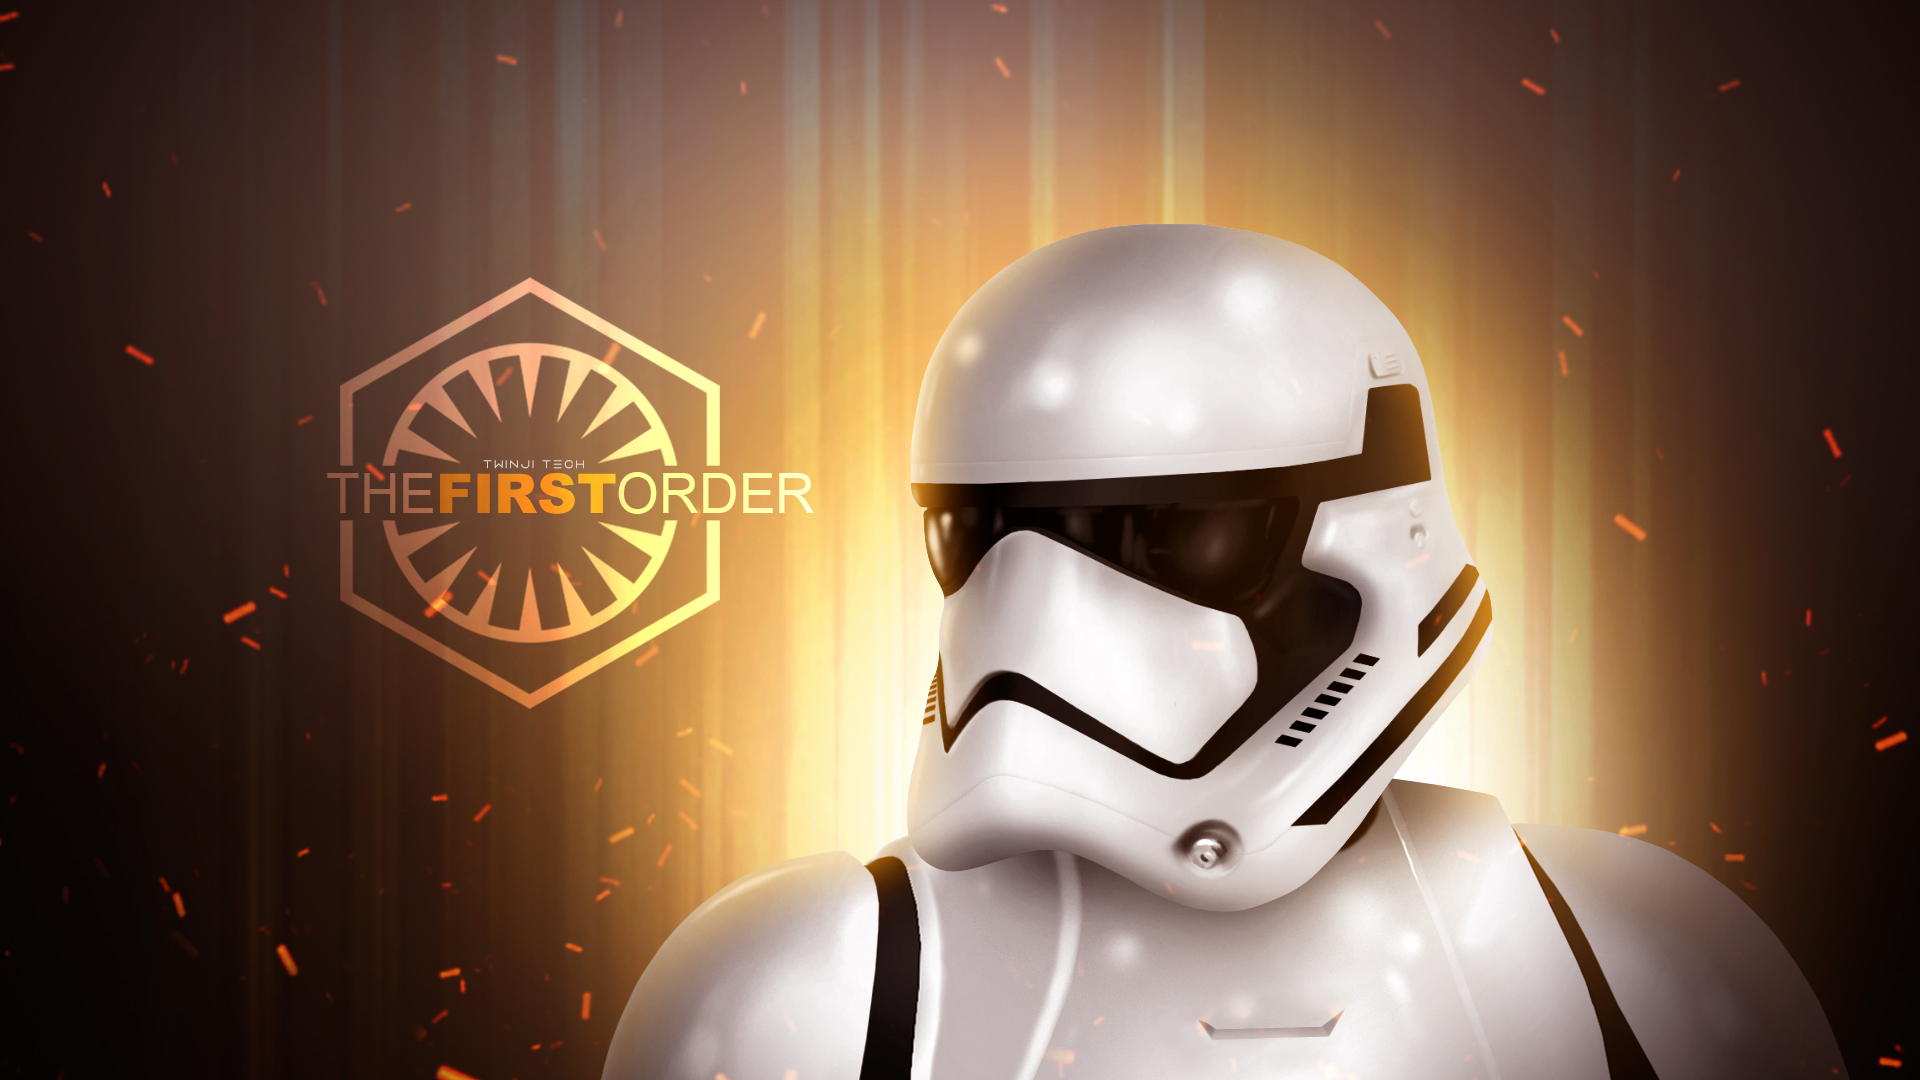 The First Order by Twinji Tech 1920x1080